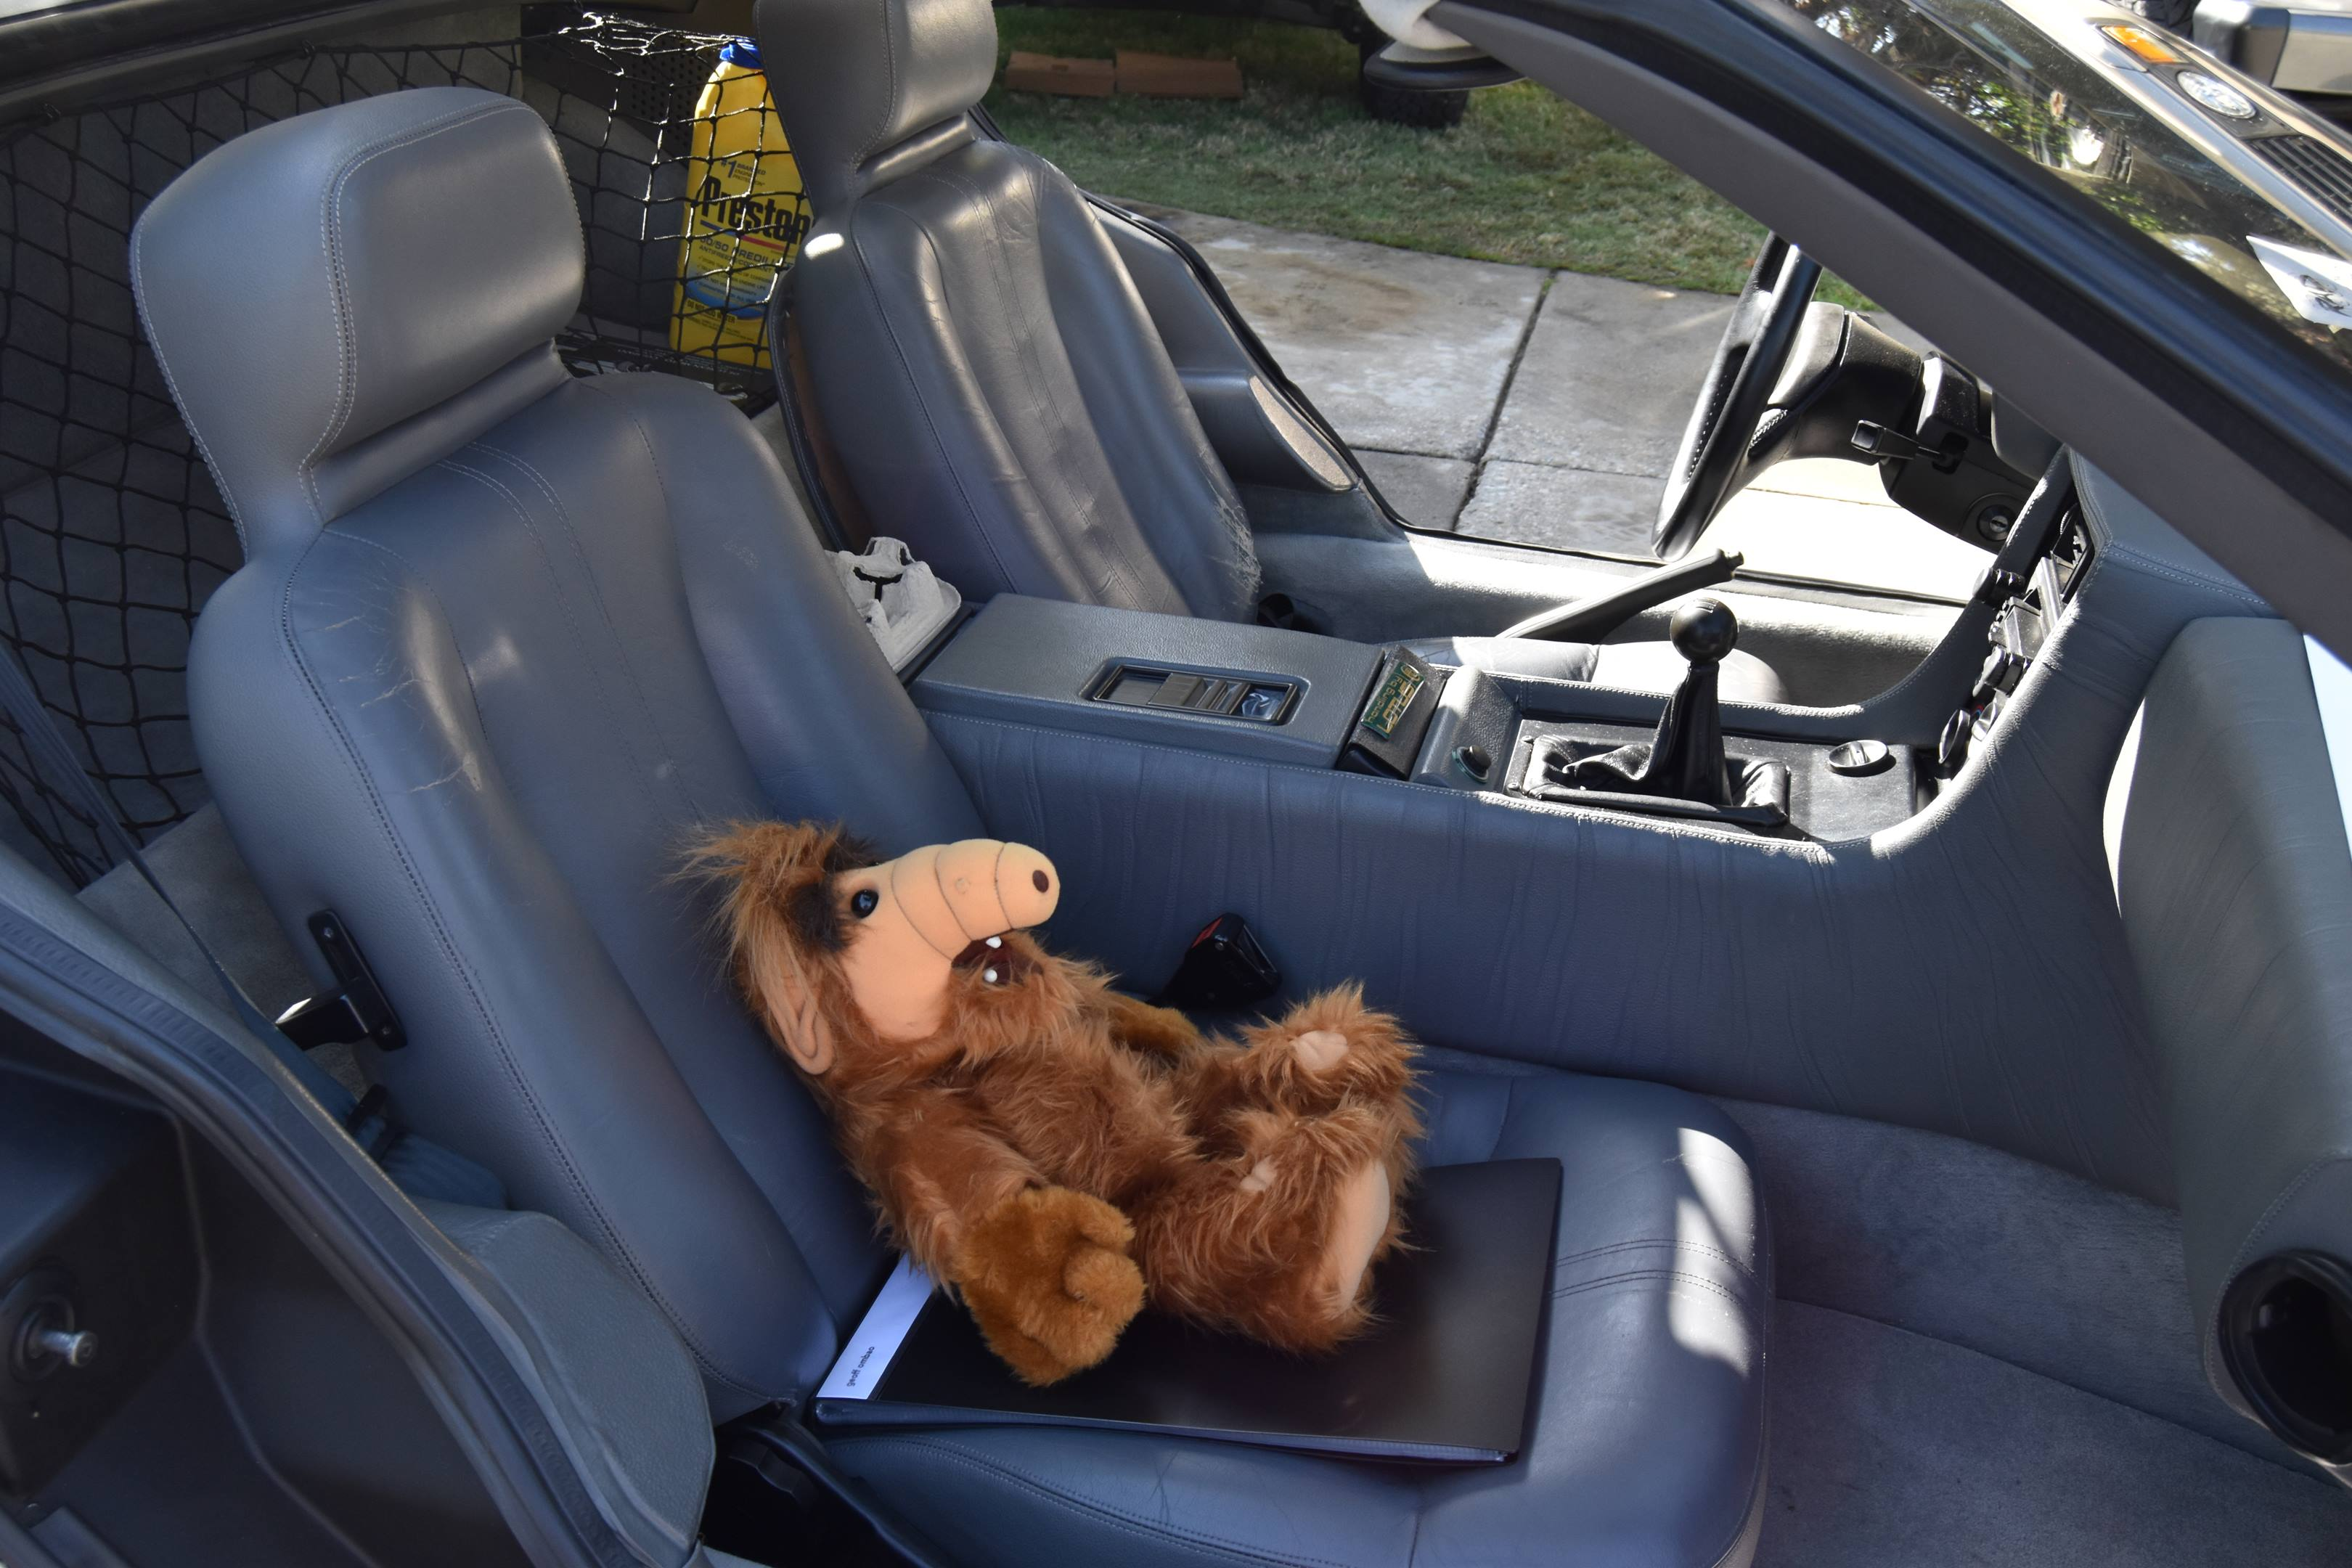 DeLorean DMC-12 interior with alf